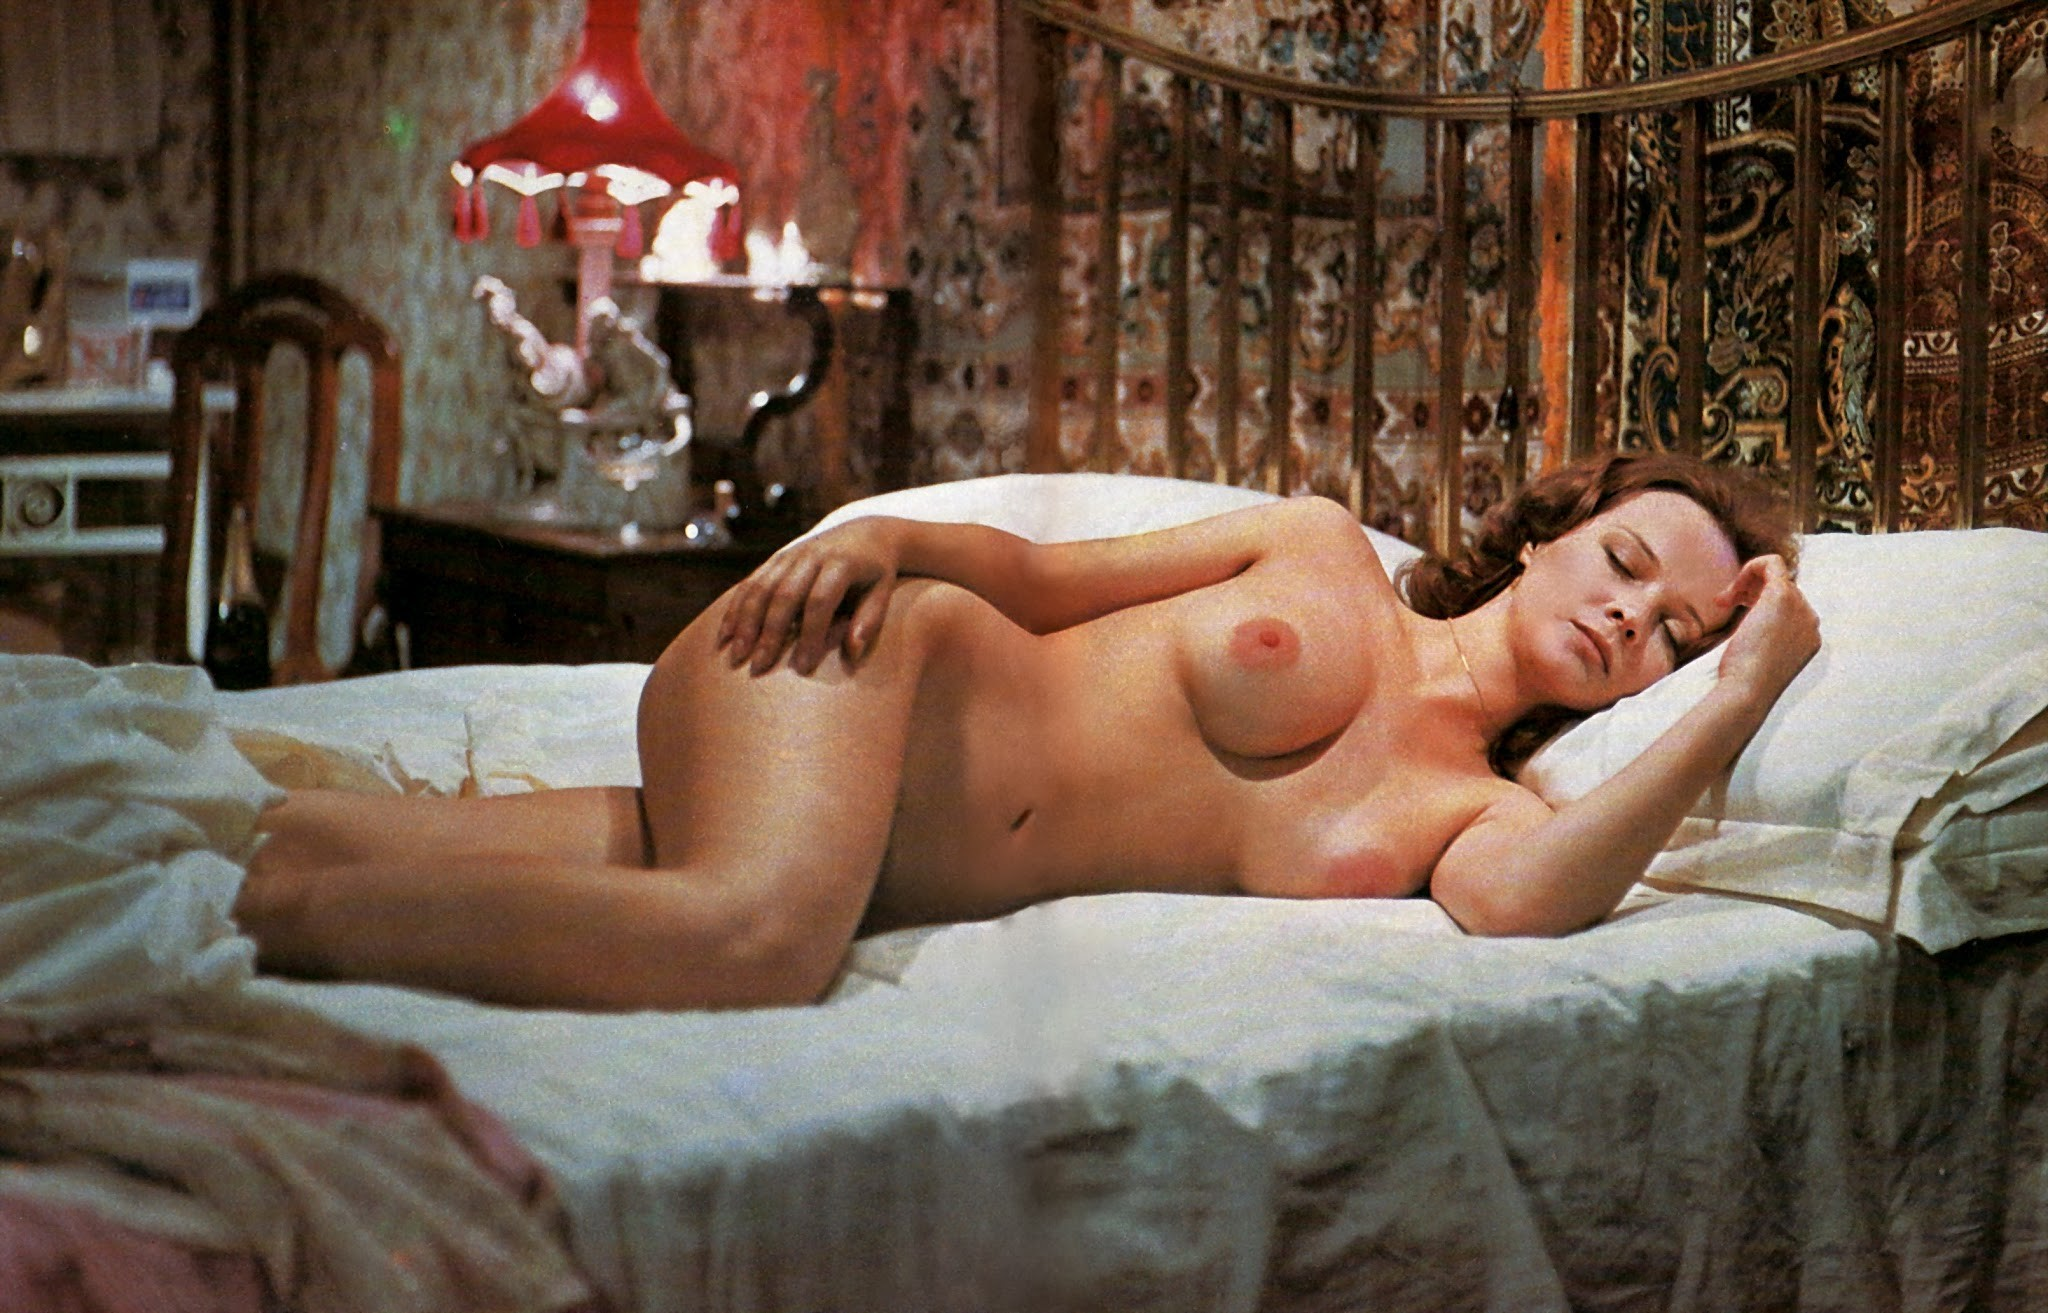 Girl movie stars naked uncensored 11